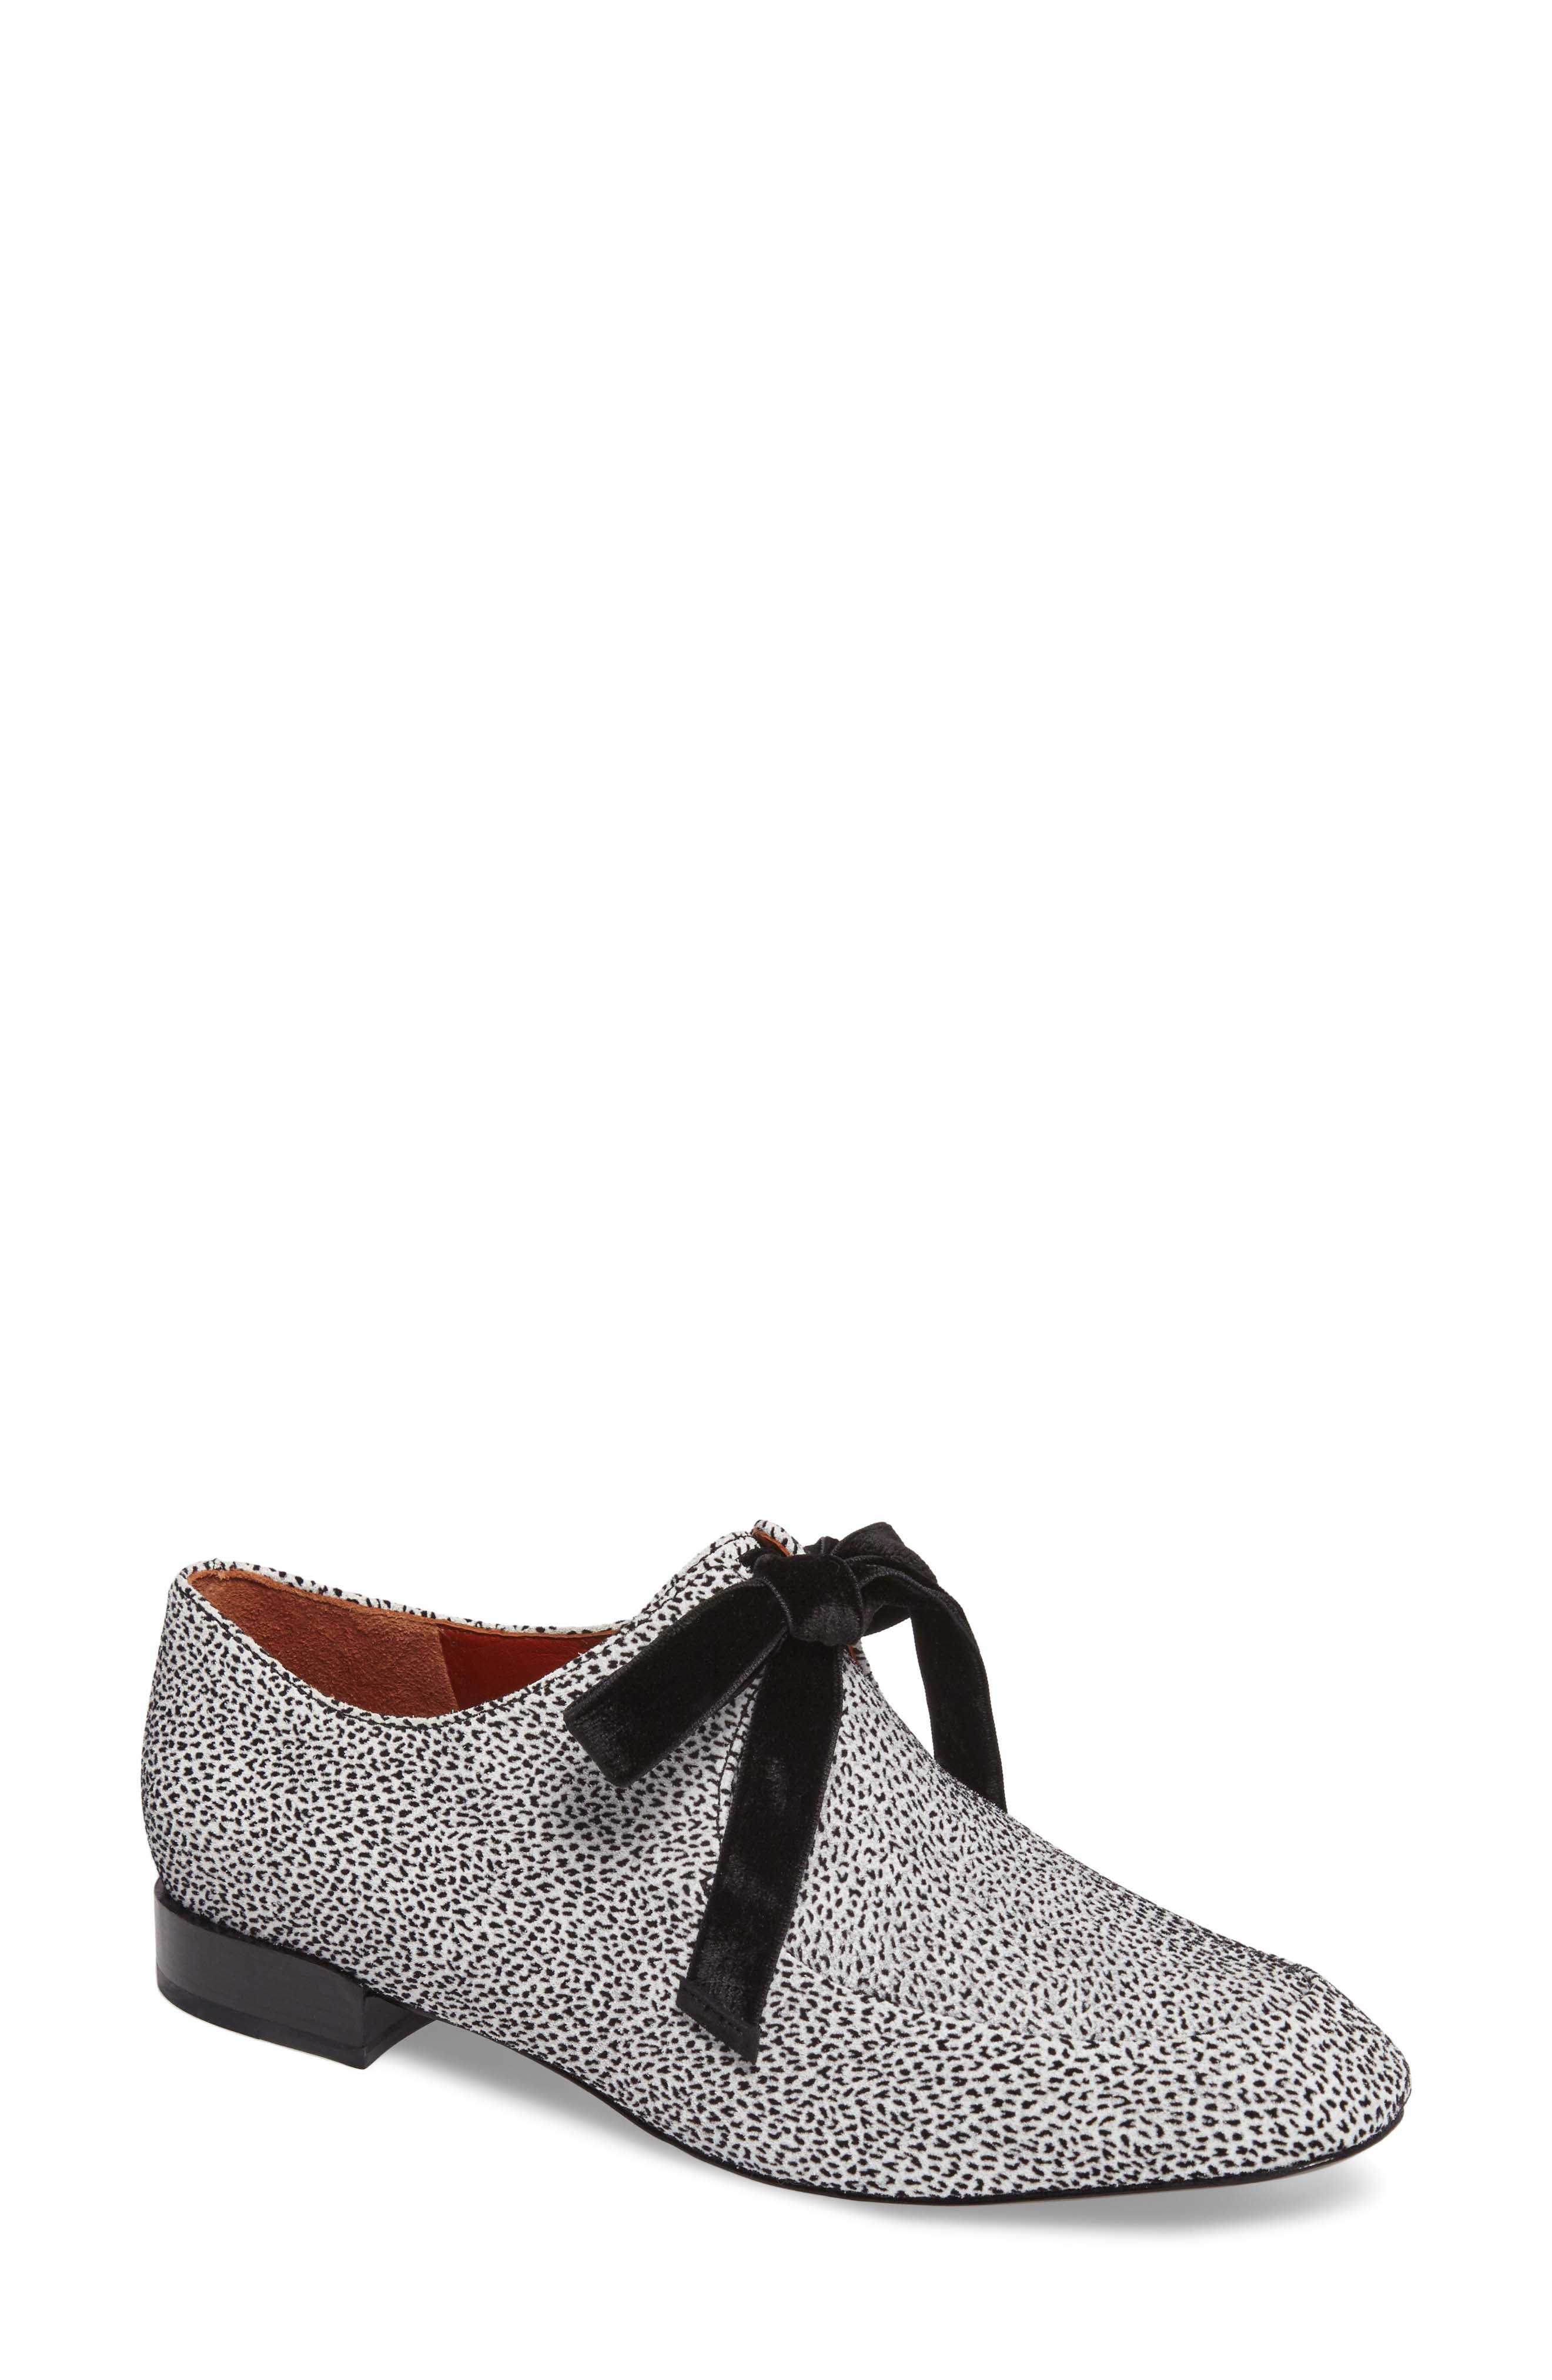 Alternate Image 1 Selected - 3.1 Philip Lim Velvet Bow Loafer (Women)